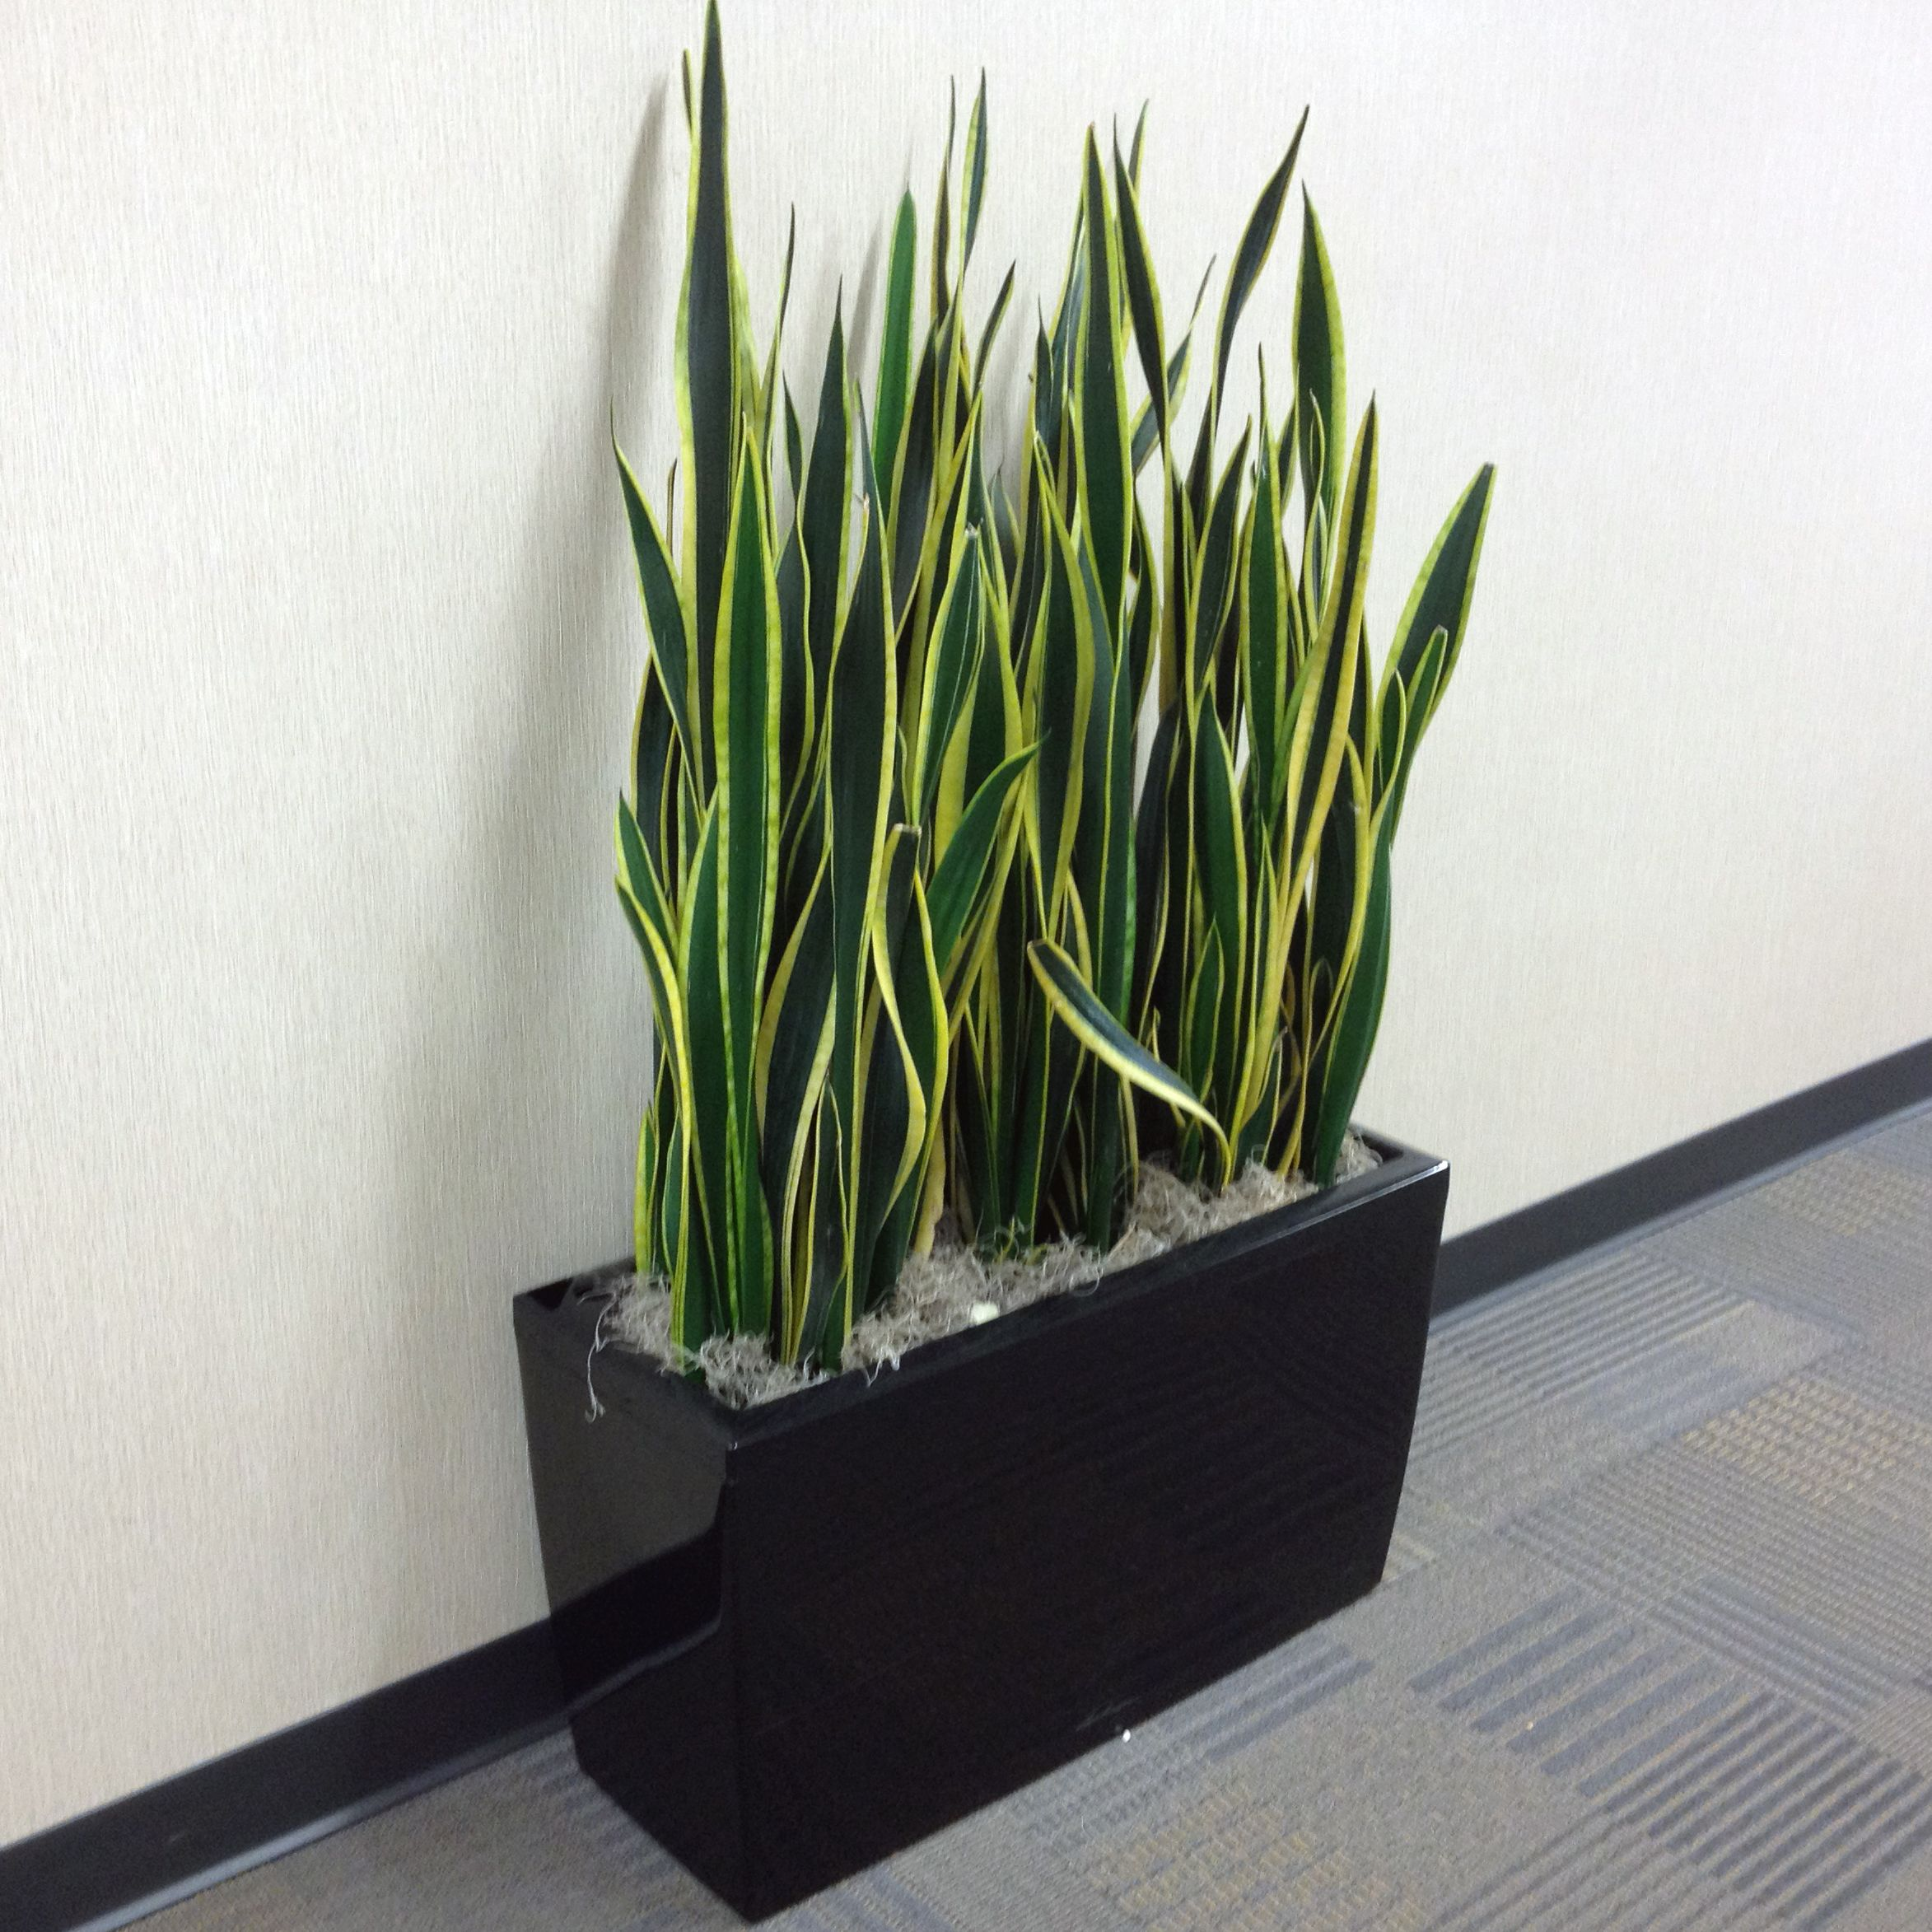 Close up of a planted Lechuza Cararo in an office building in